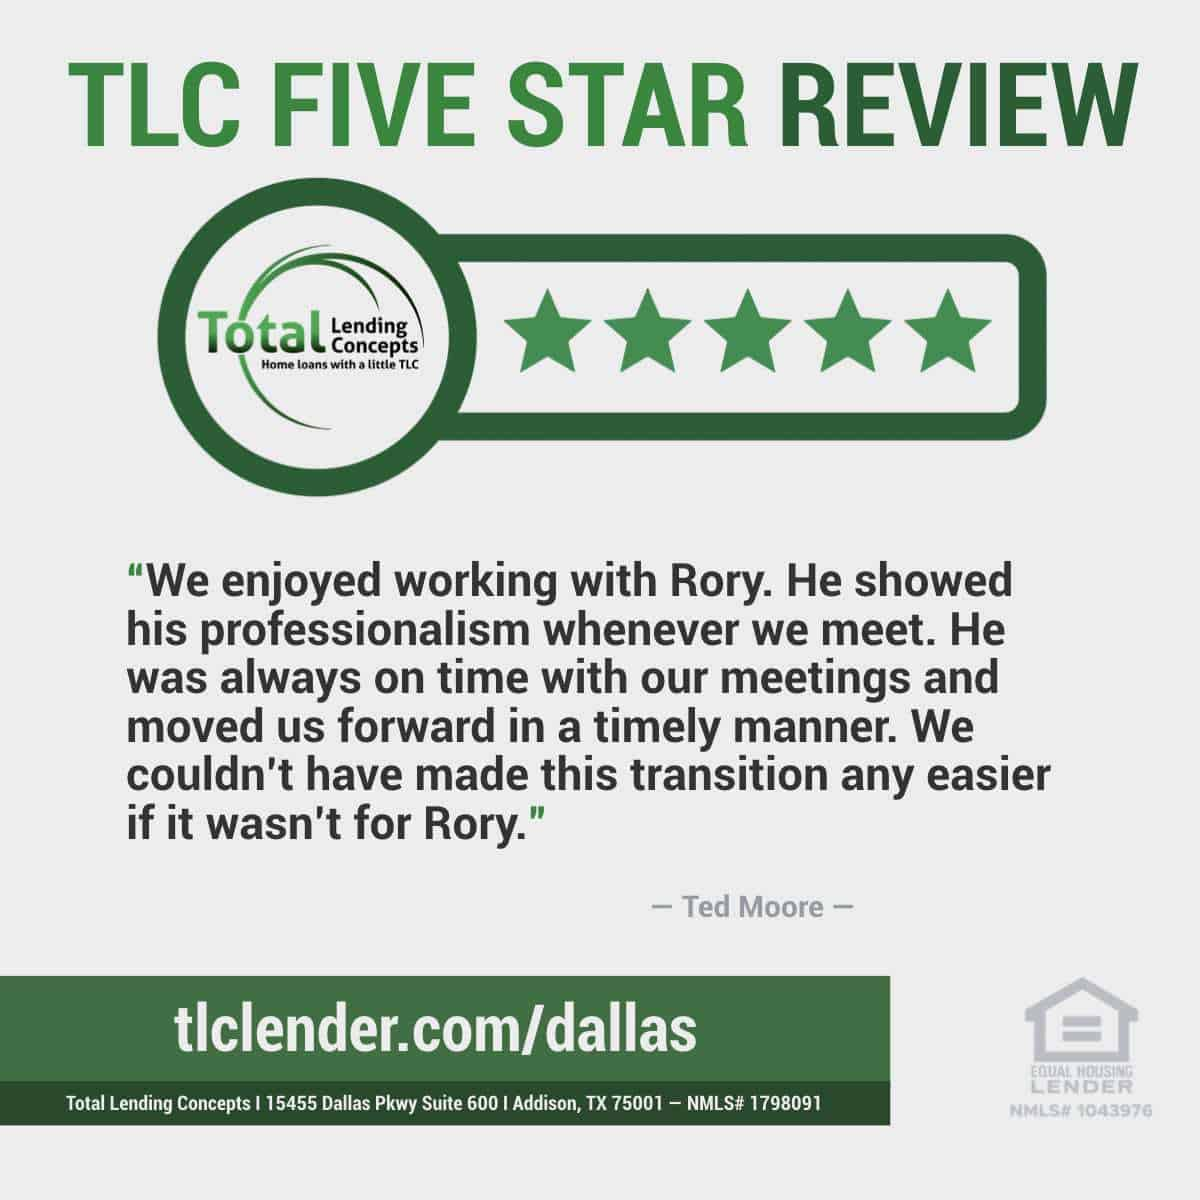 Total-Lending-Concepts-Five-Star-Review-Ted-Moore-in-Addison-Texas-for-Rory-House-Loan